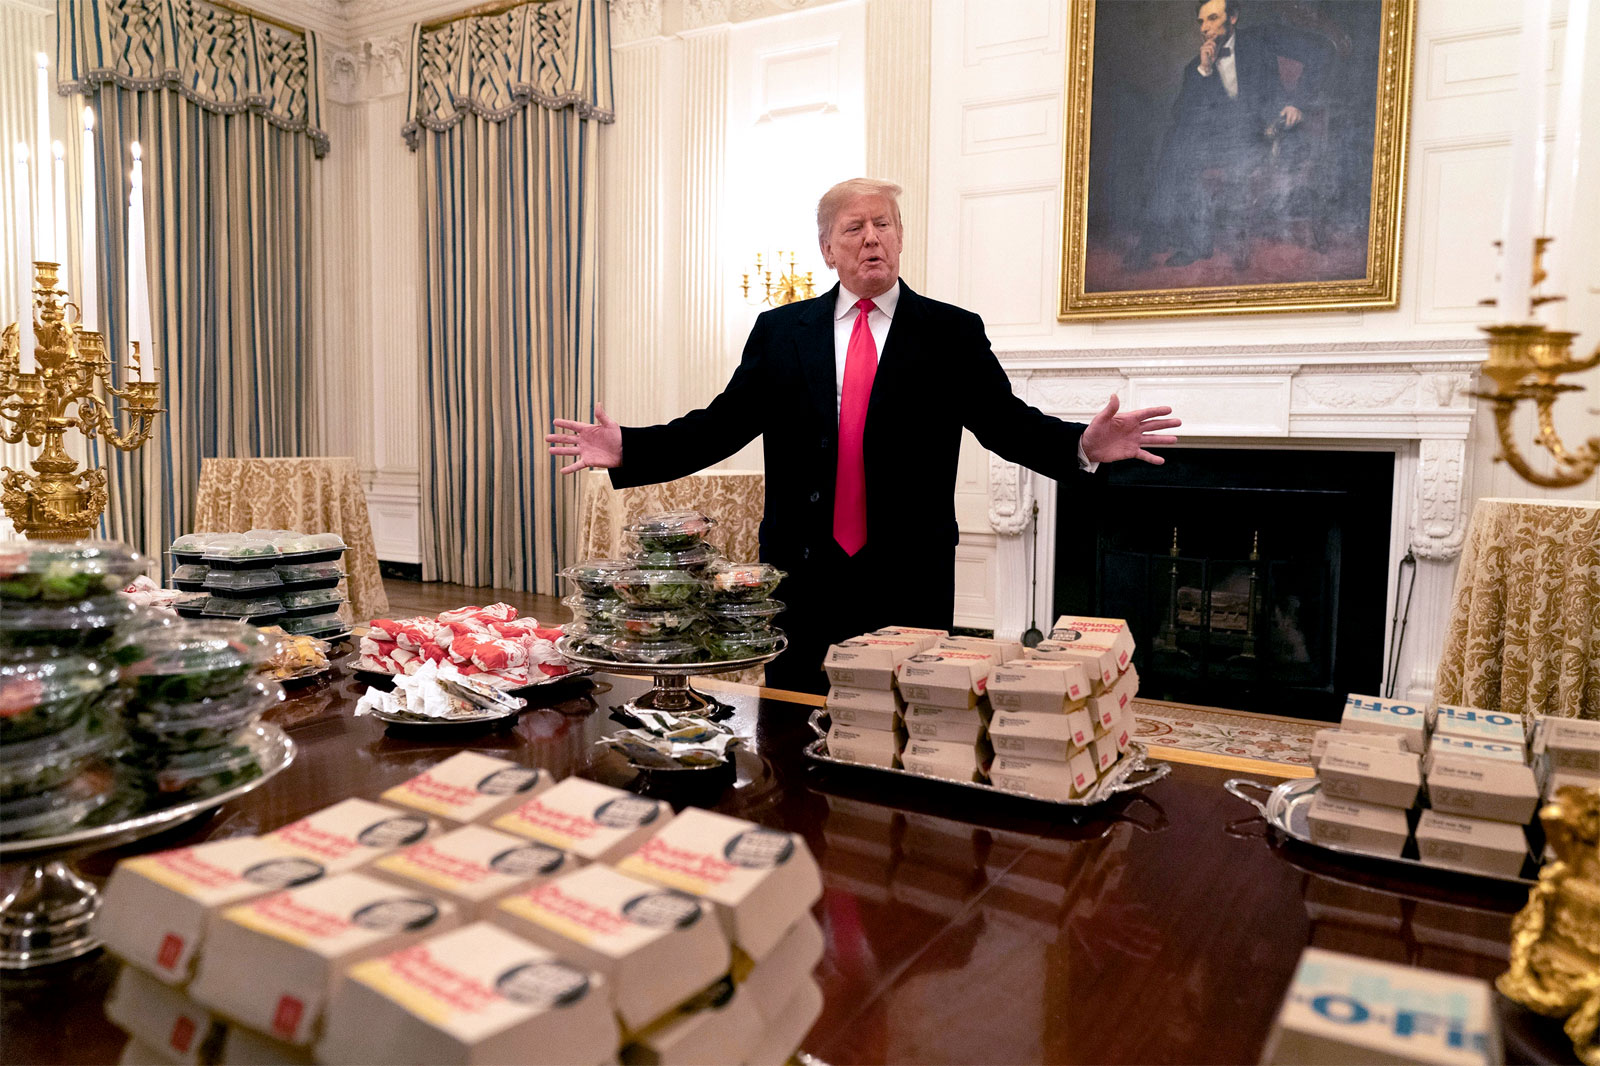 junk food at te White House